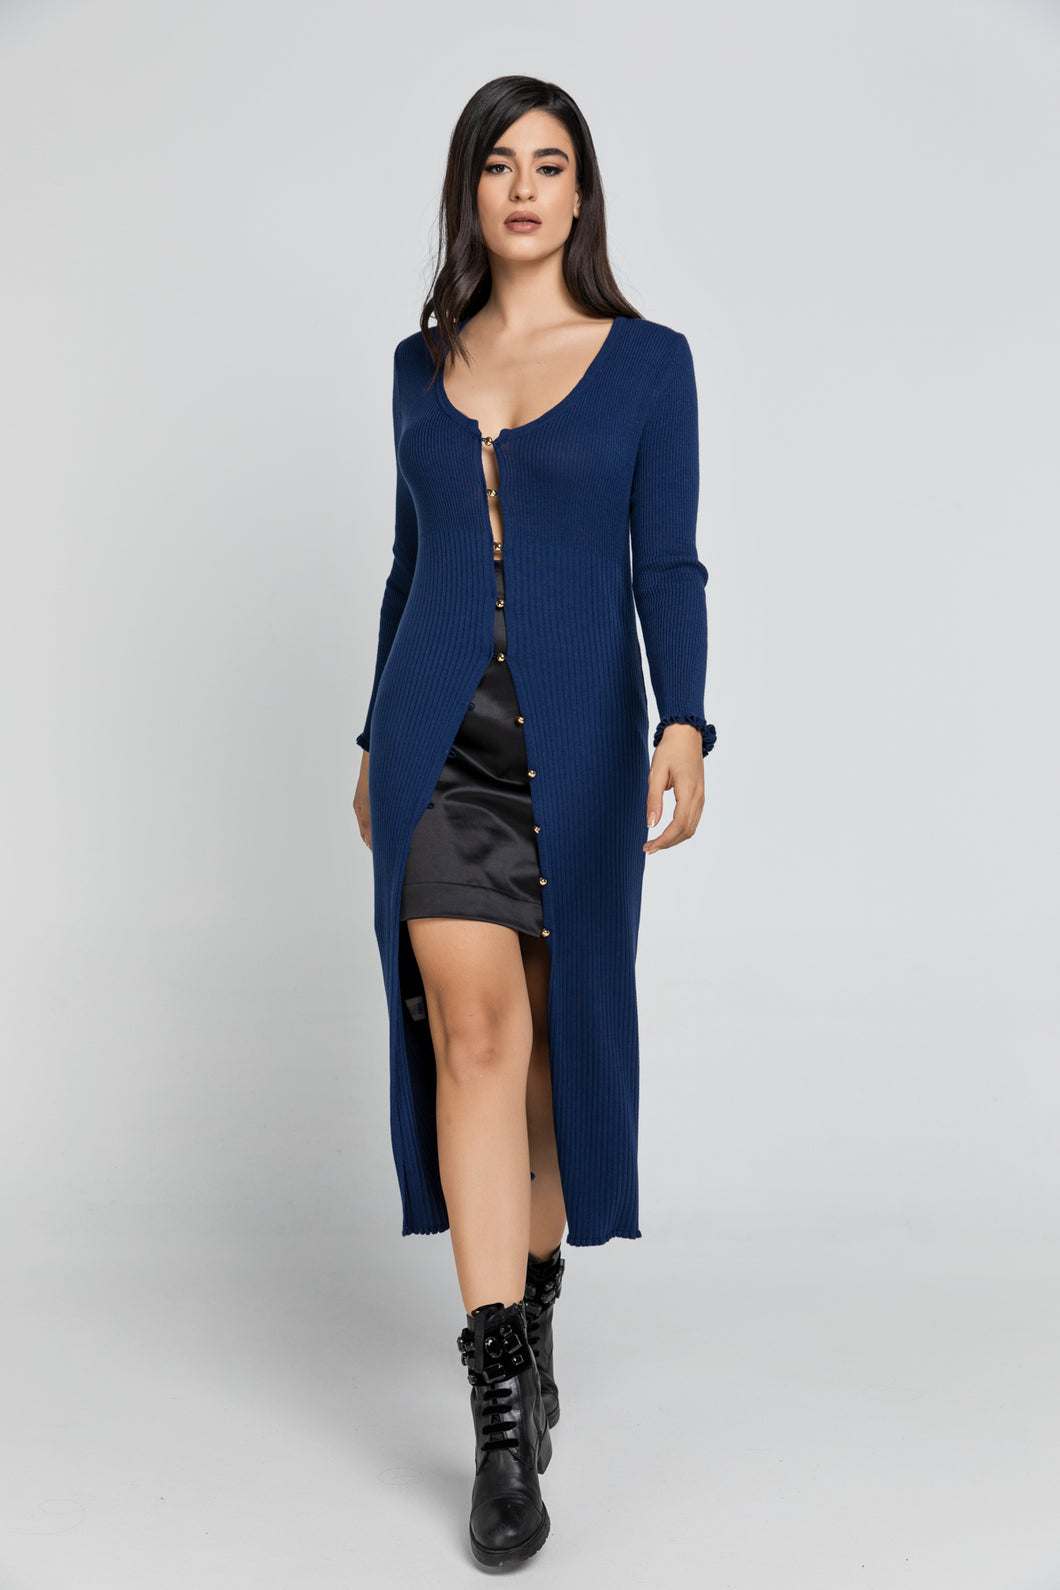 Long Dark Blue Knit Cardigan